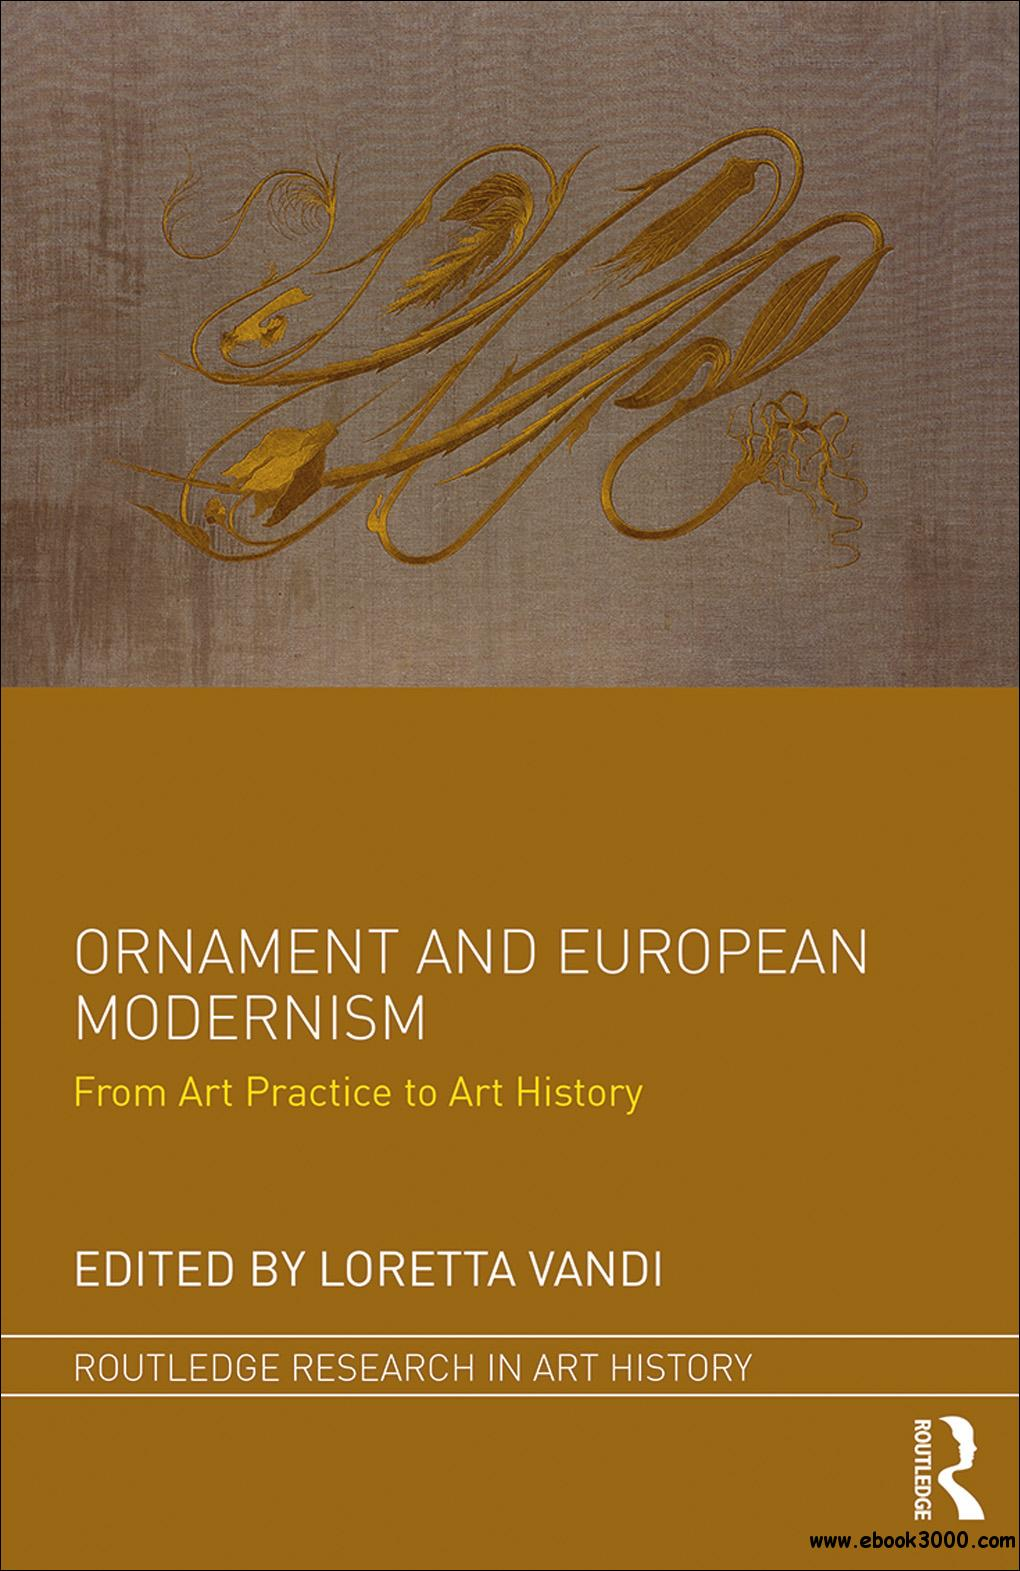 Ornament and European Modernism: From Art Practice to Art History